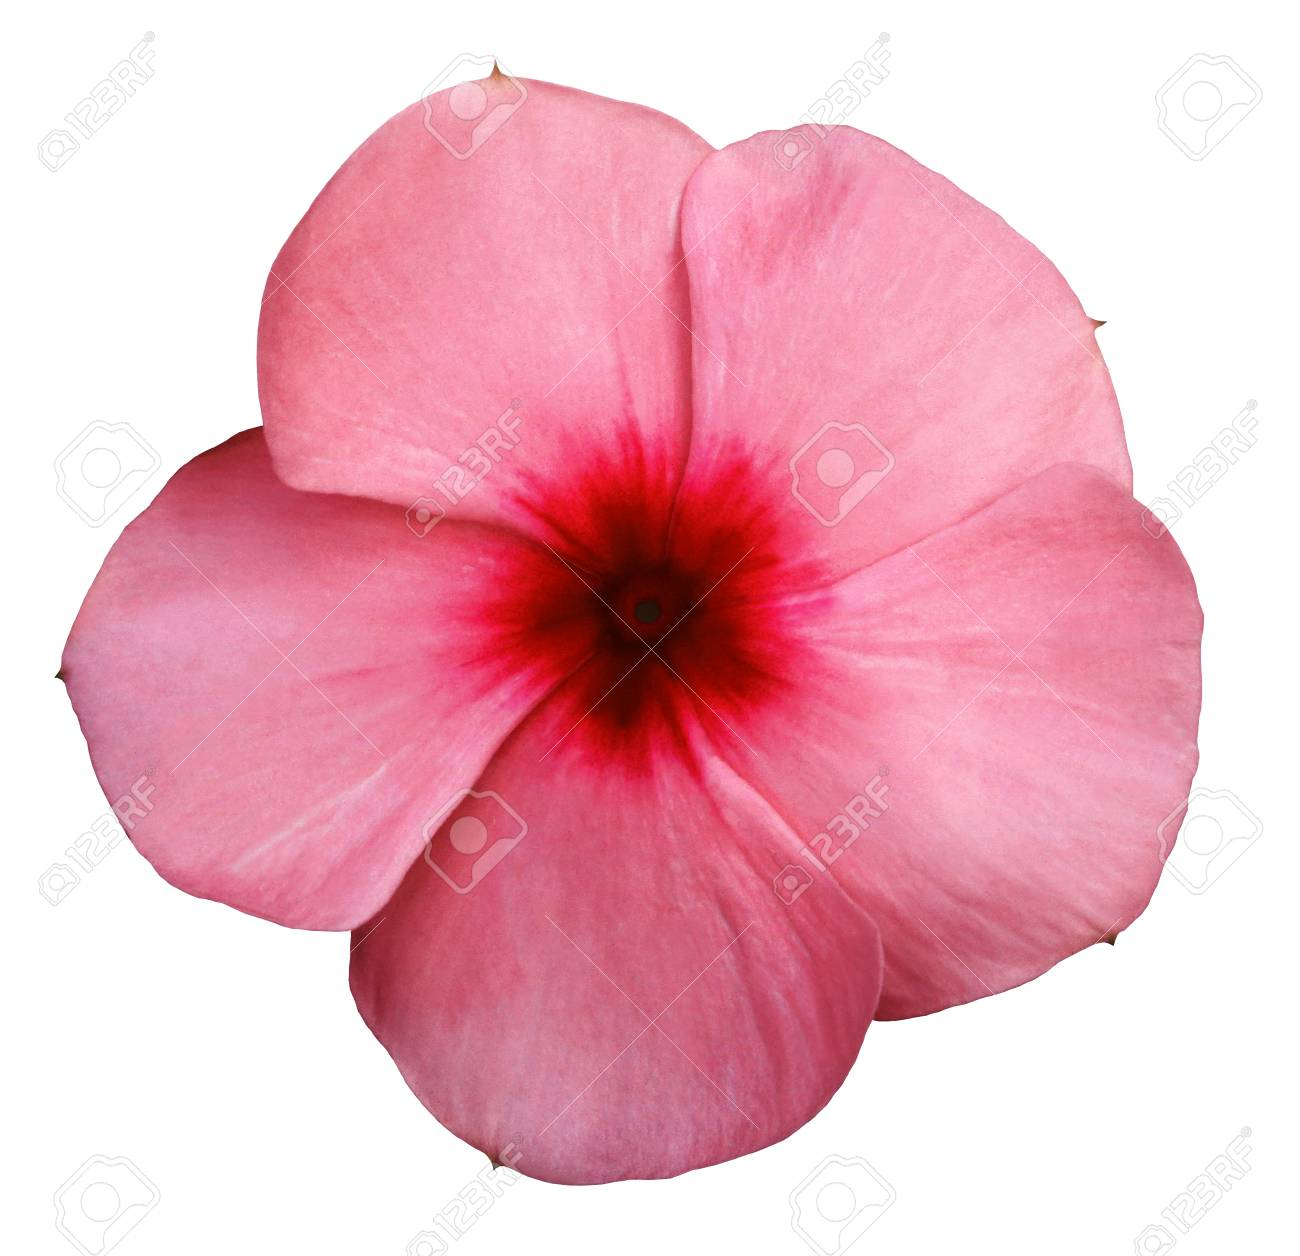 Flower Pink-red Violets. White Isolated Background Closeup. No Shadows.  Nature. Stock Photo, Picture And Royalty Free Image. Image 81705233.